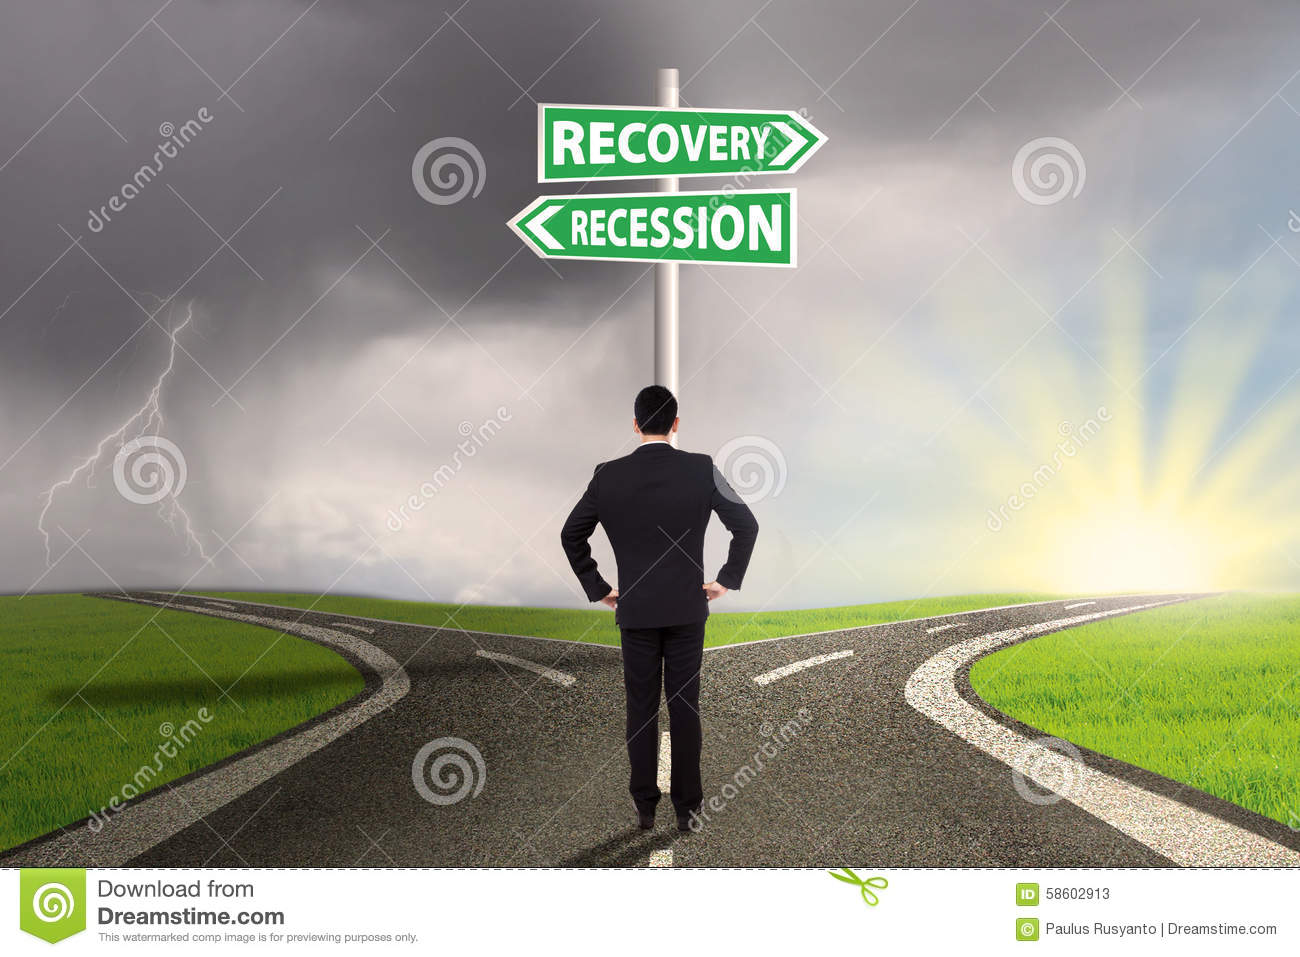 Global Crisis, Recession & Uneven Recovery